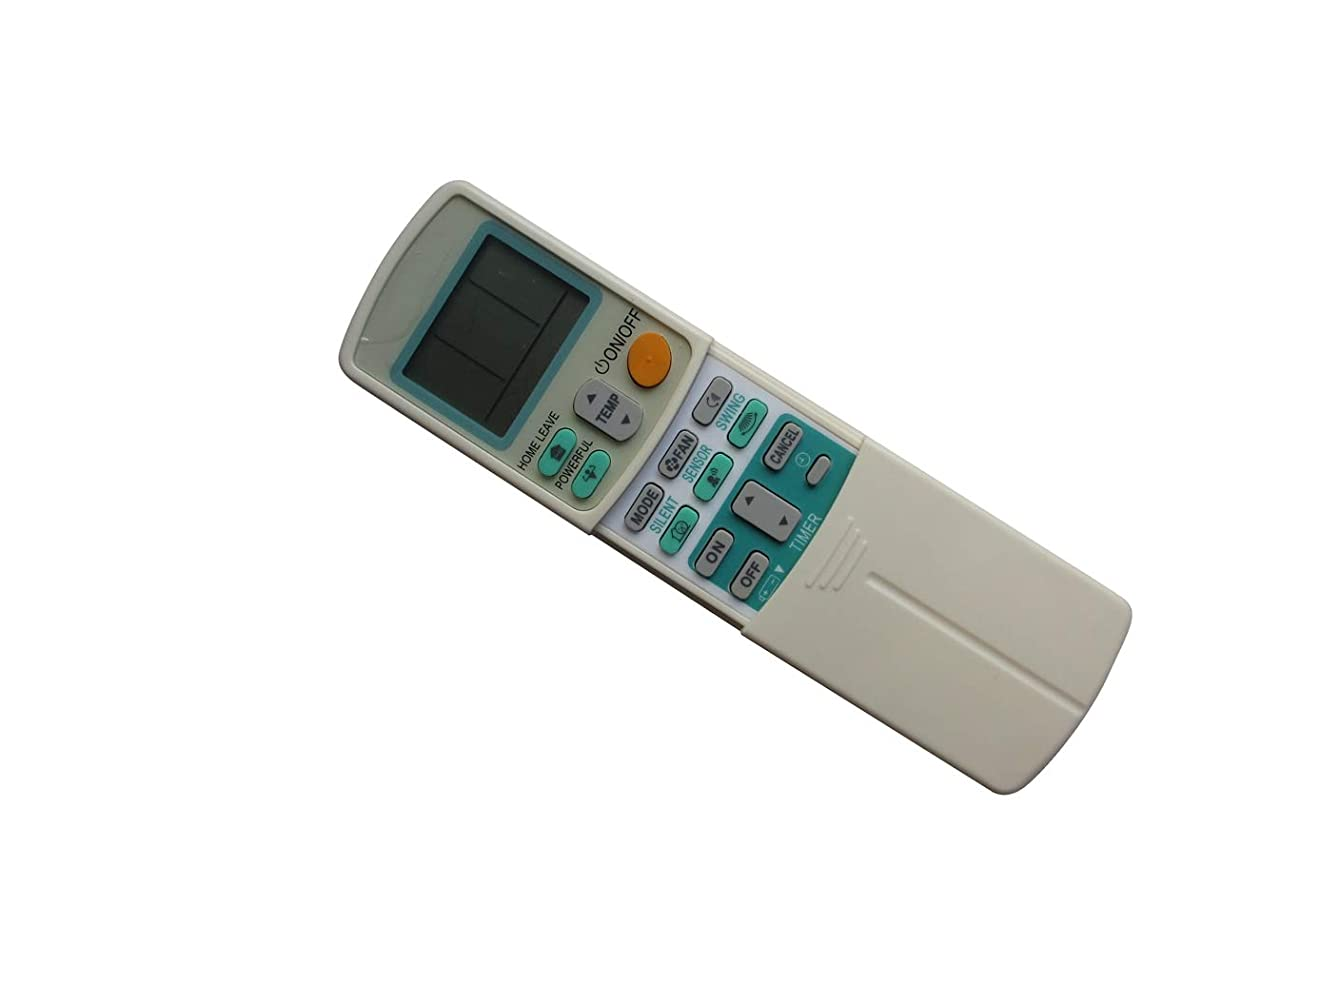 Hotsmtbang Replacement Remote Control for Daikin FTXS12DVJU FTXS15DVJU FTXS18DVJU FTXS24DVJU FDXS09DVJU FDXS12DVJU Inverter Split System Air Conditioner